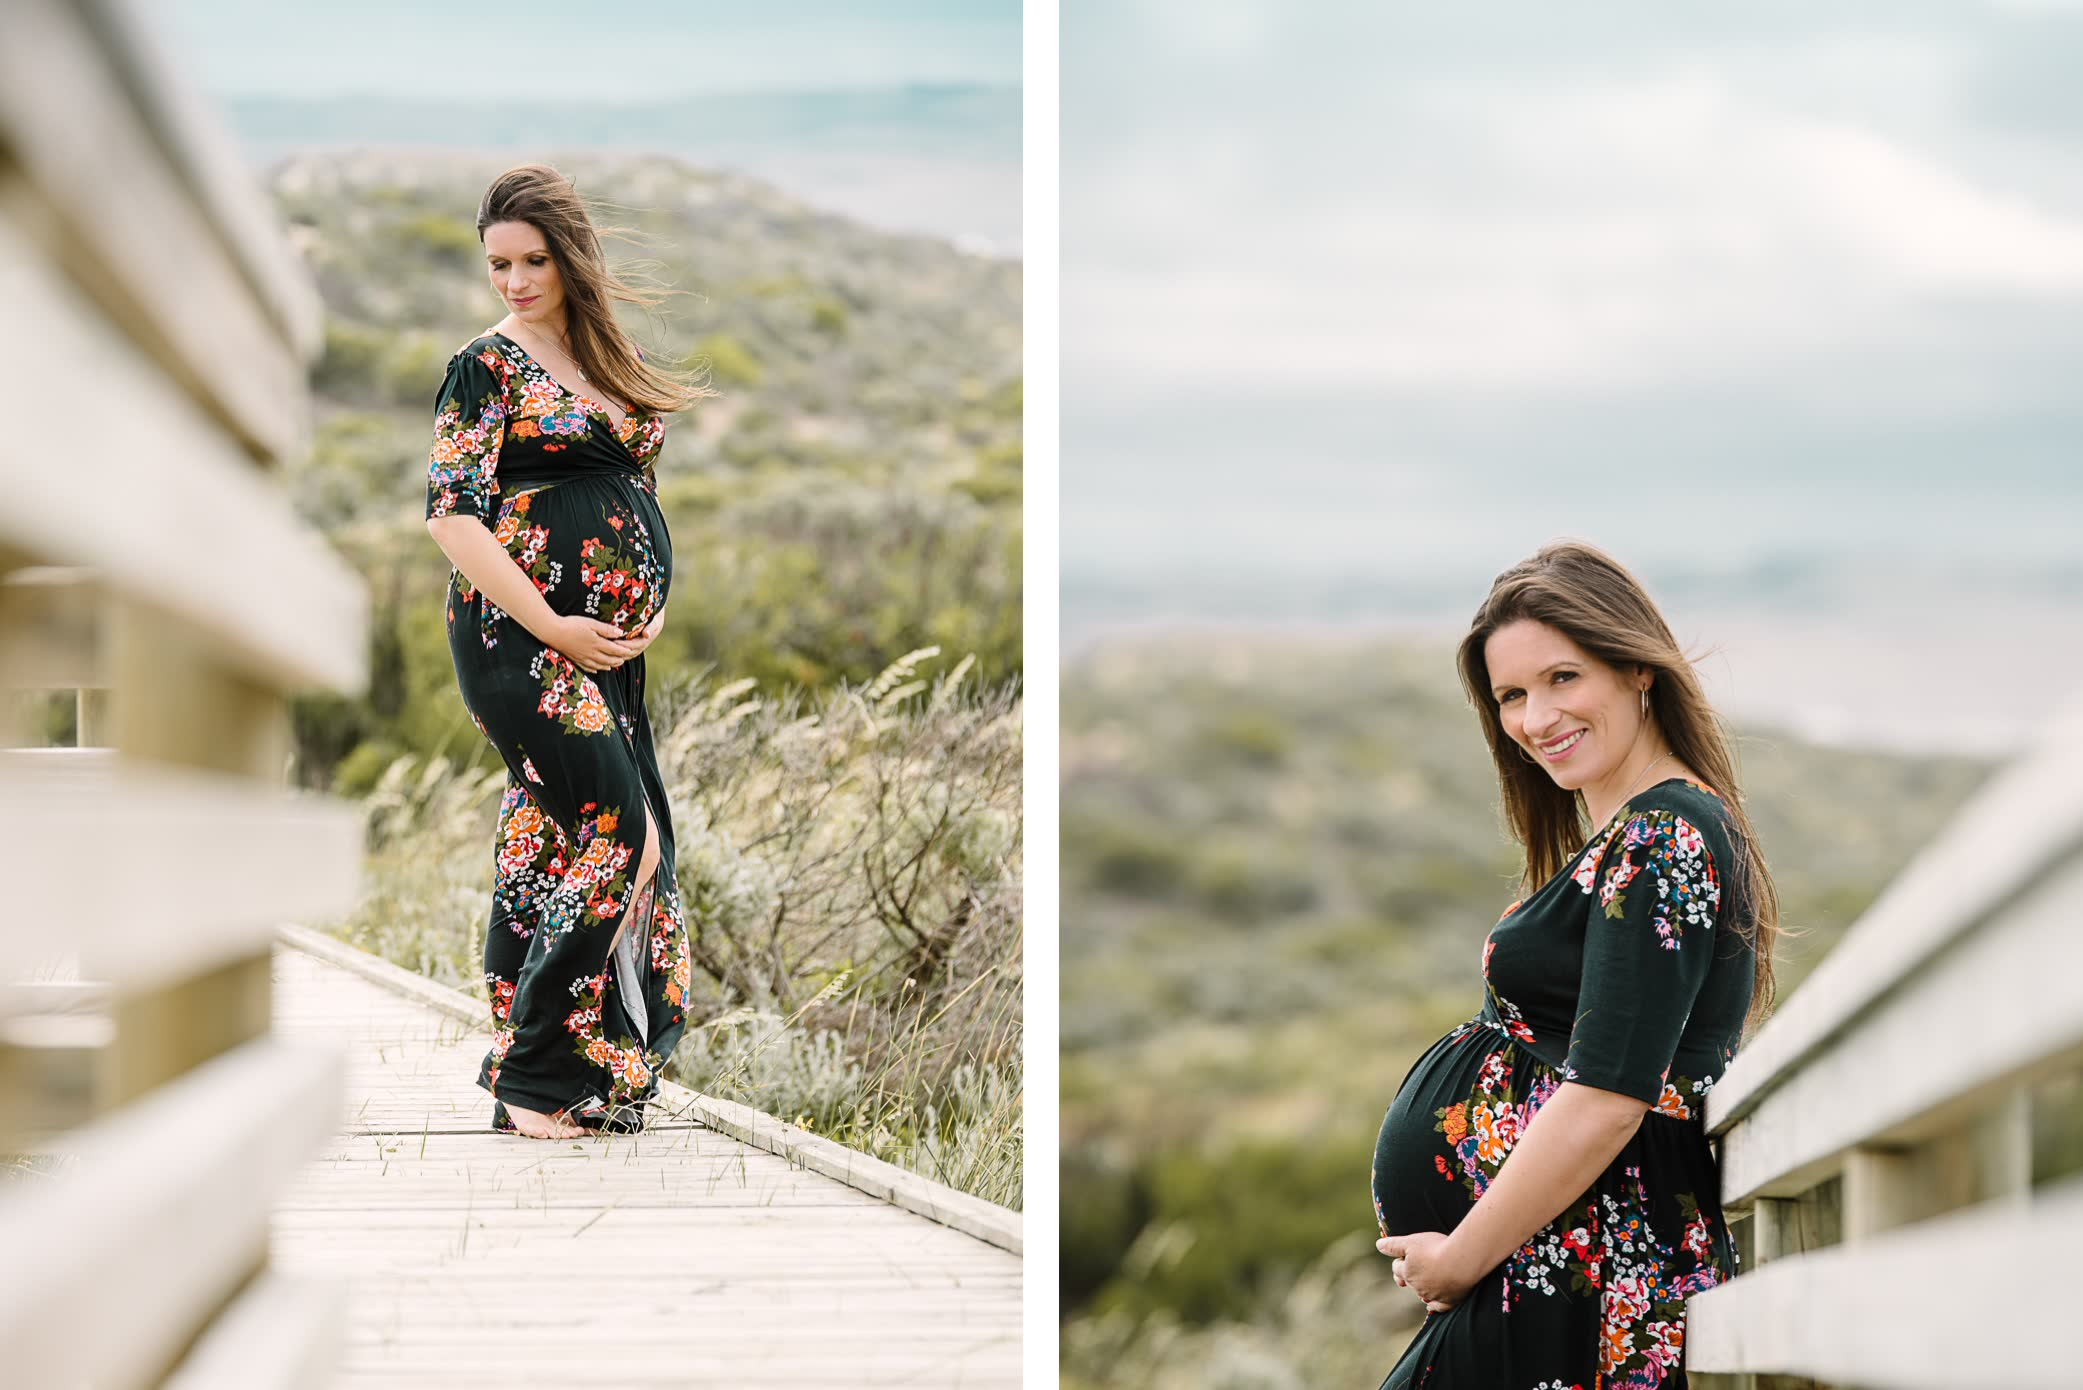 pregnancy-photography-coatsal-session-11